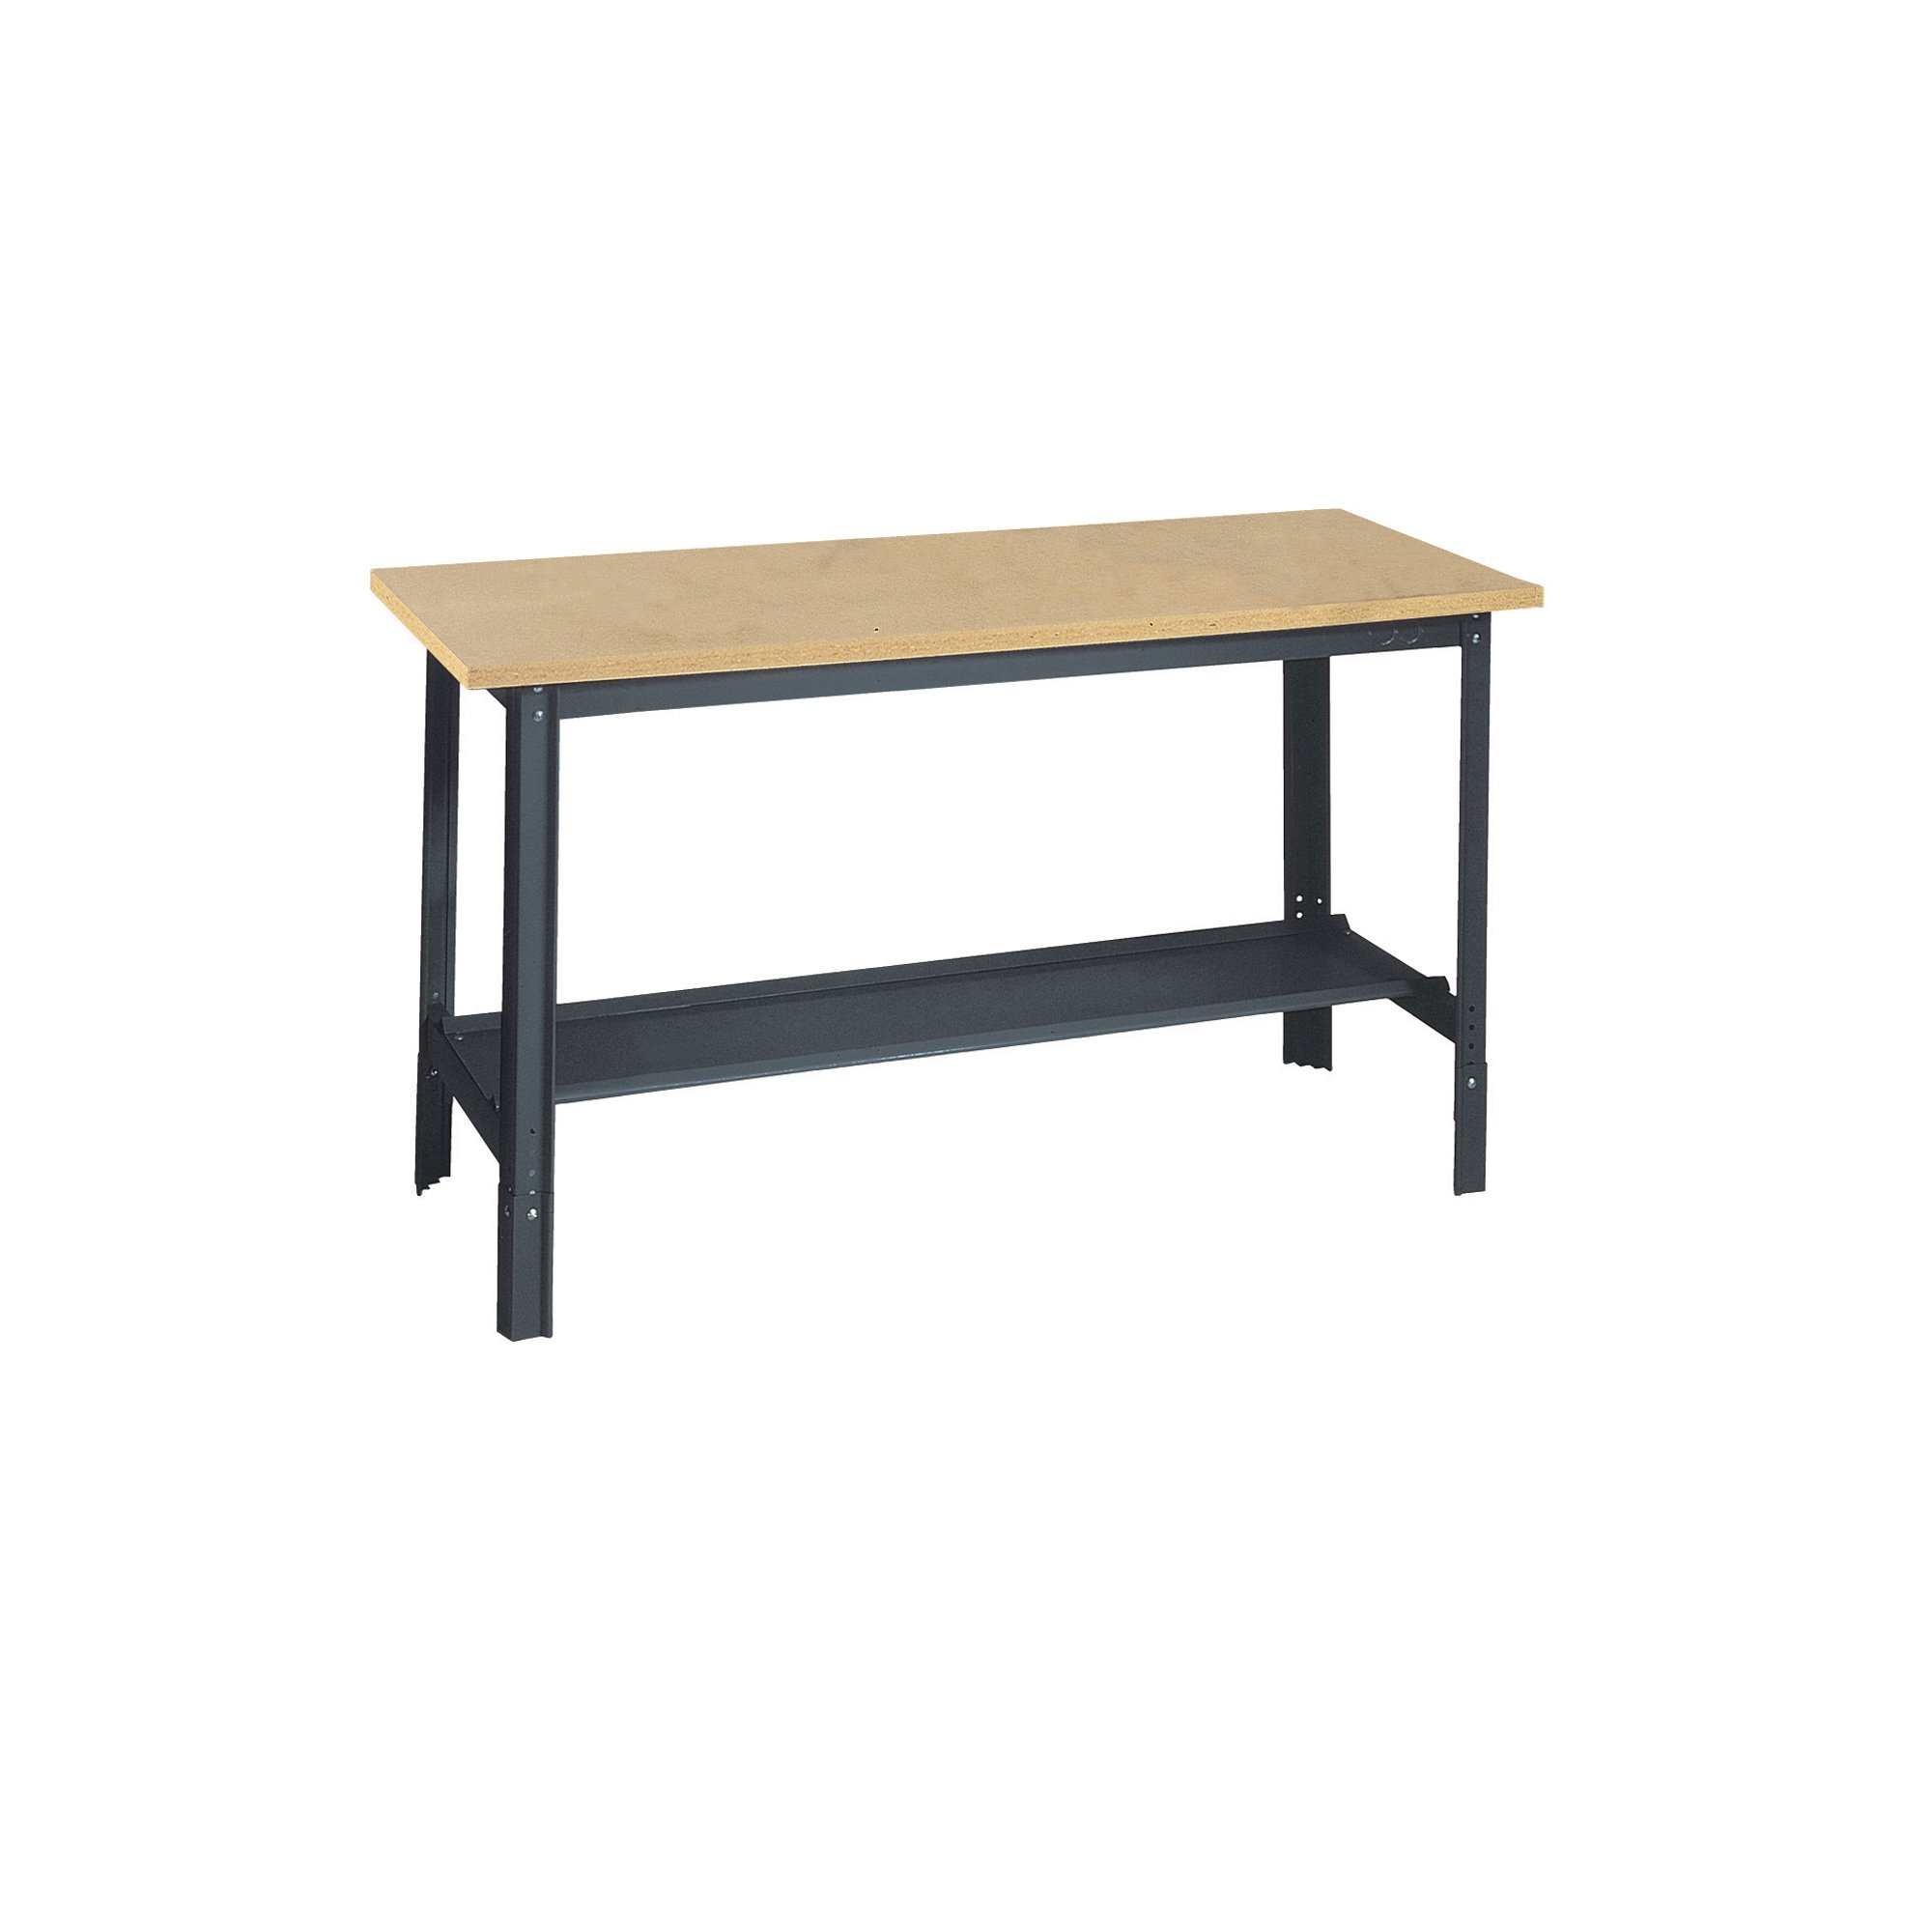 Edsal UB400 Industrial Gray Heavy Gauge Steel Economy Work Bench with 1'' Flake Board Shelf, 48'' Width x 29'' Height x 24'' Depth